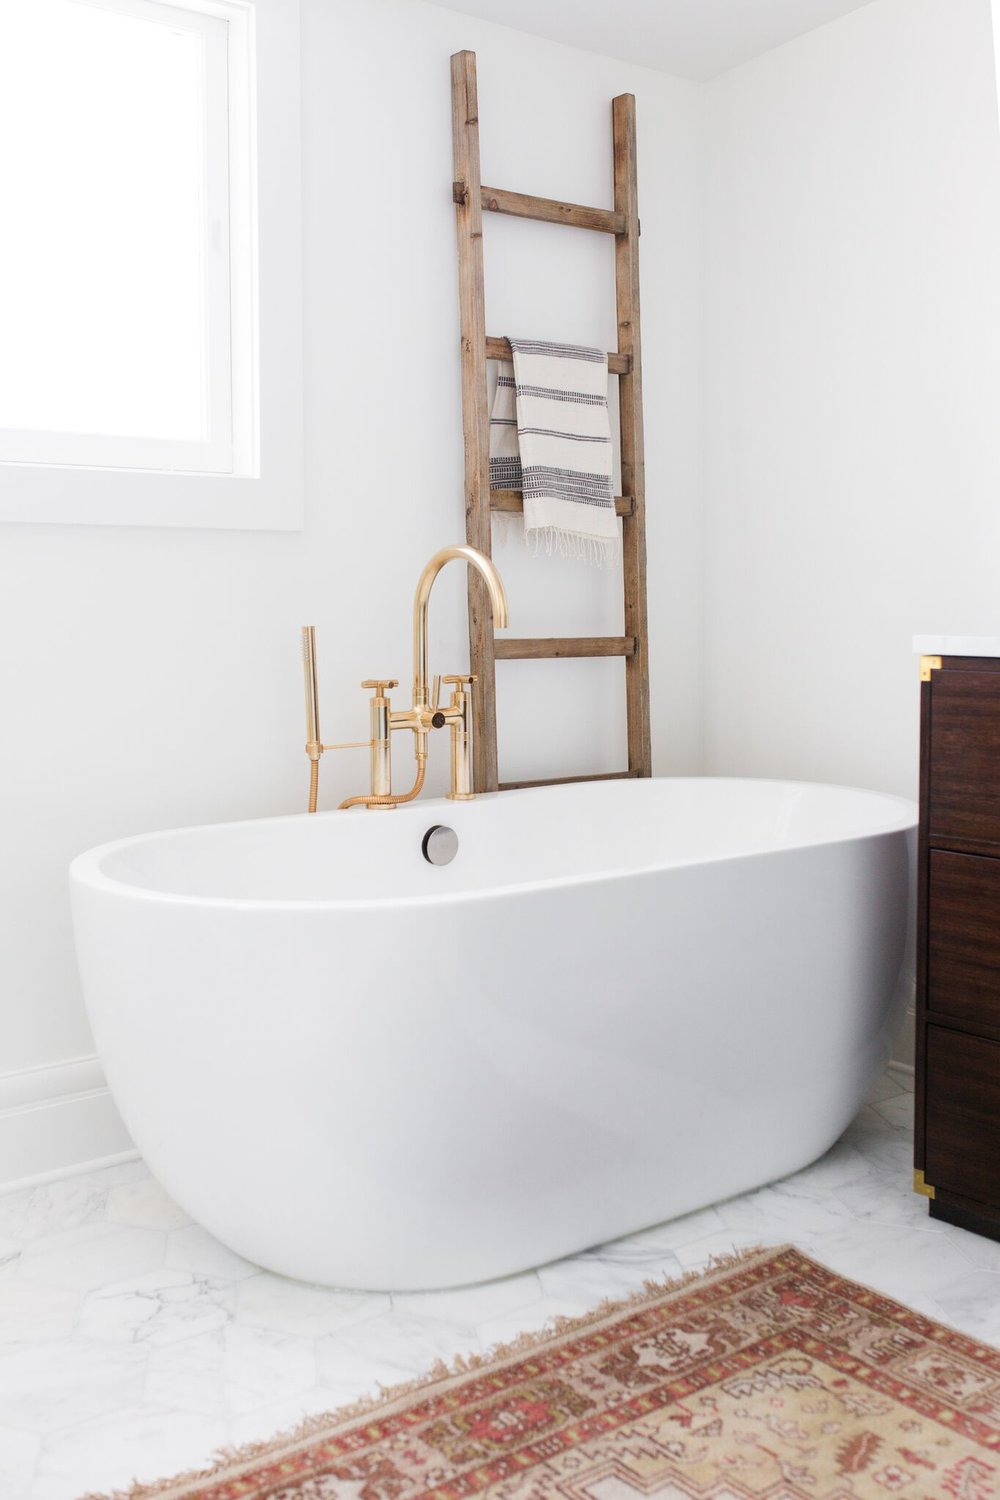 Full view of statement bathtub in bathroom